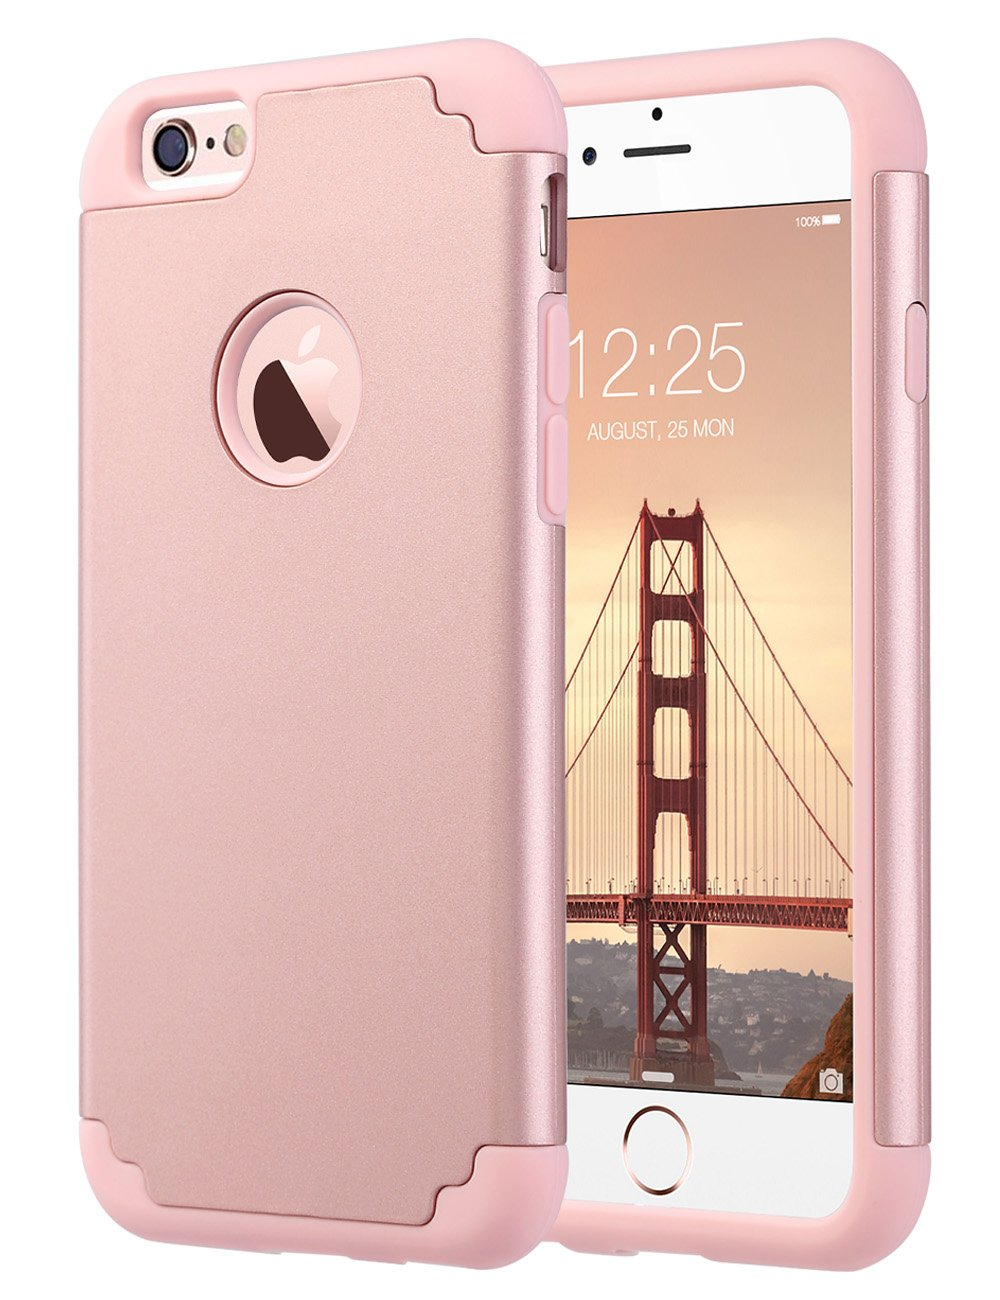 iPhone 6S Case,iPhone 6 Case, ULAK Slim Dual Layer Soft Silicone & Hard Back Cover Bumper Protective Shock-Absorption & Skid-Proof Anti-Scratch Hybrid Case for Apple iPhone 6 / 6S 4.7 inch - 71BEAiKtGjL - iPhone 6S Case,iPhone 6 Case, ULAK Slim Dual Layer Soft Silicone & Hard Back Cover Bumper Protective Shock-Absorption & Skid-Proof Anti-Scratch Hybrid Case for Apple iPhone 6 / 6S 4.7 inch